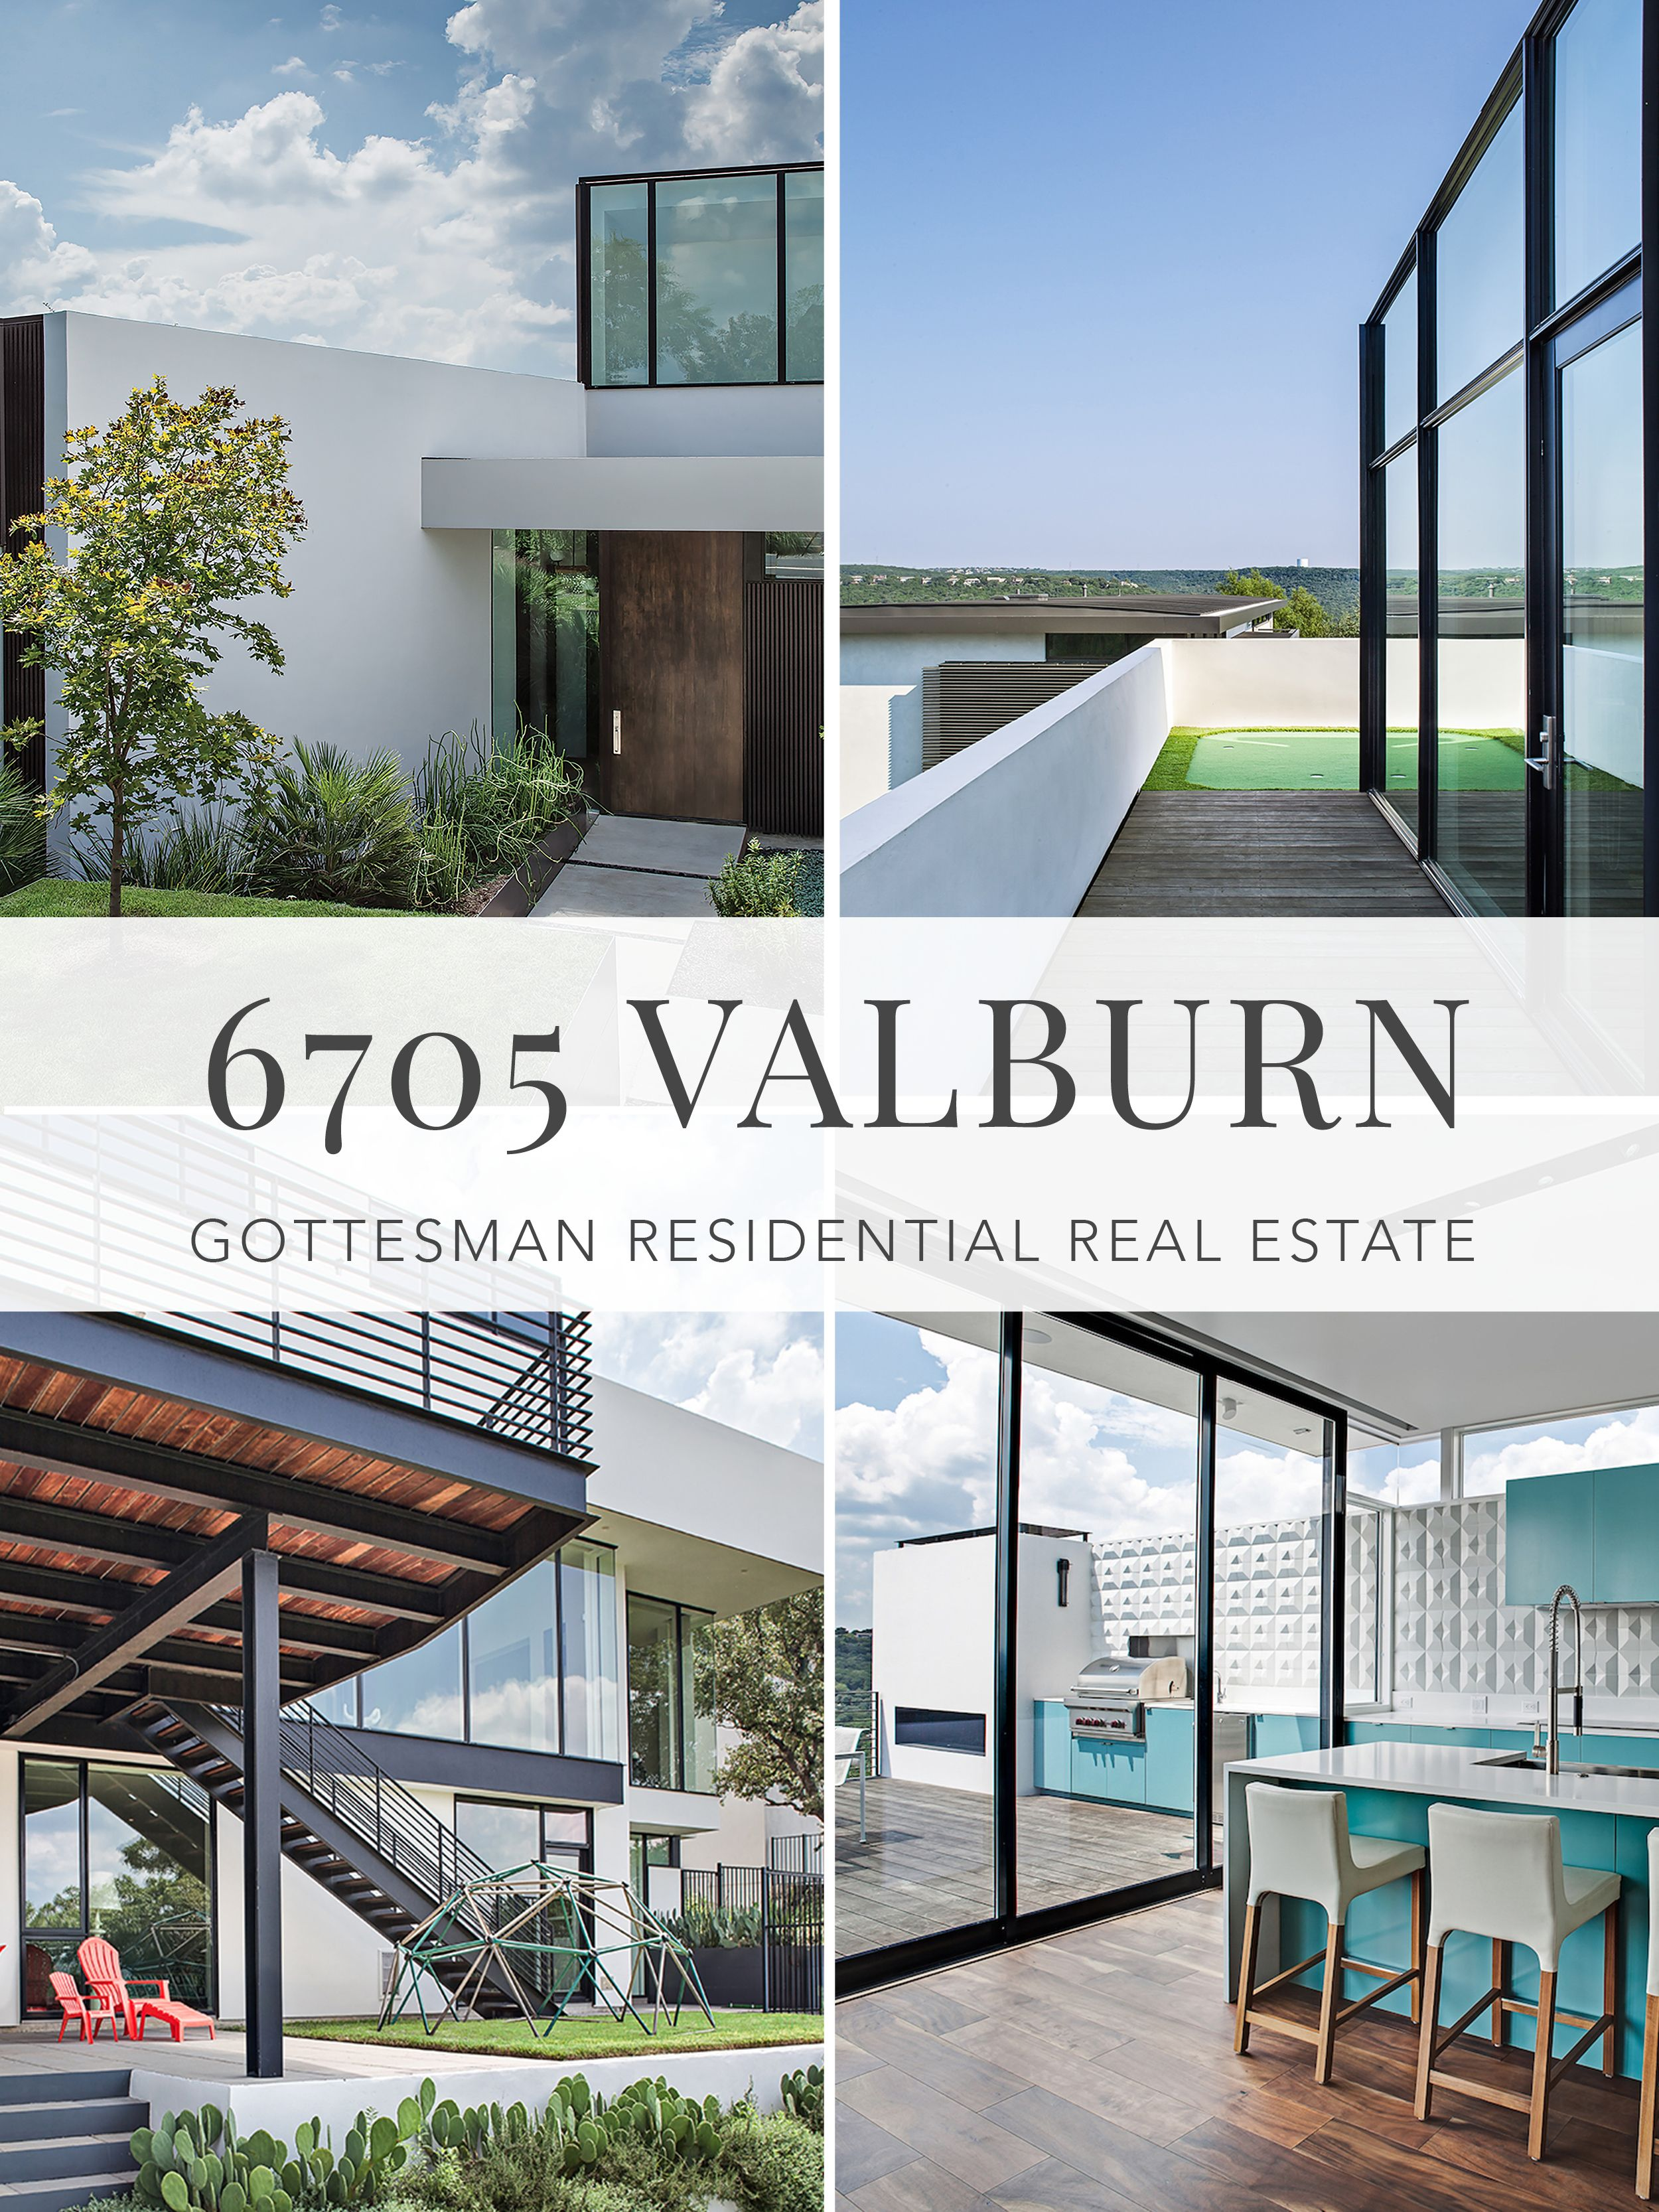 6705 Valburn | Gottesman Residential Real Estate | Designed by ...